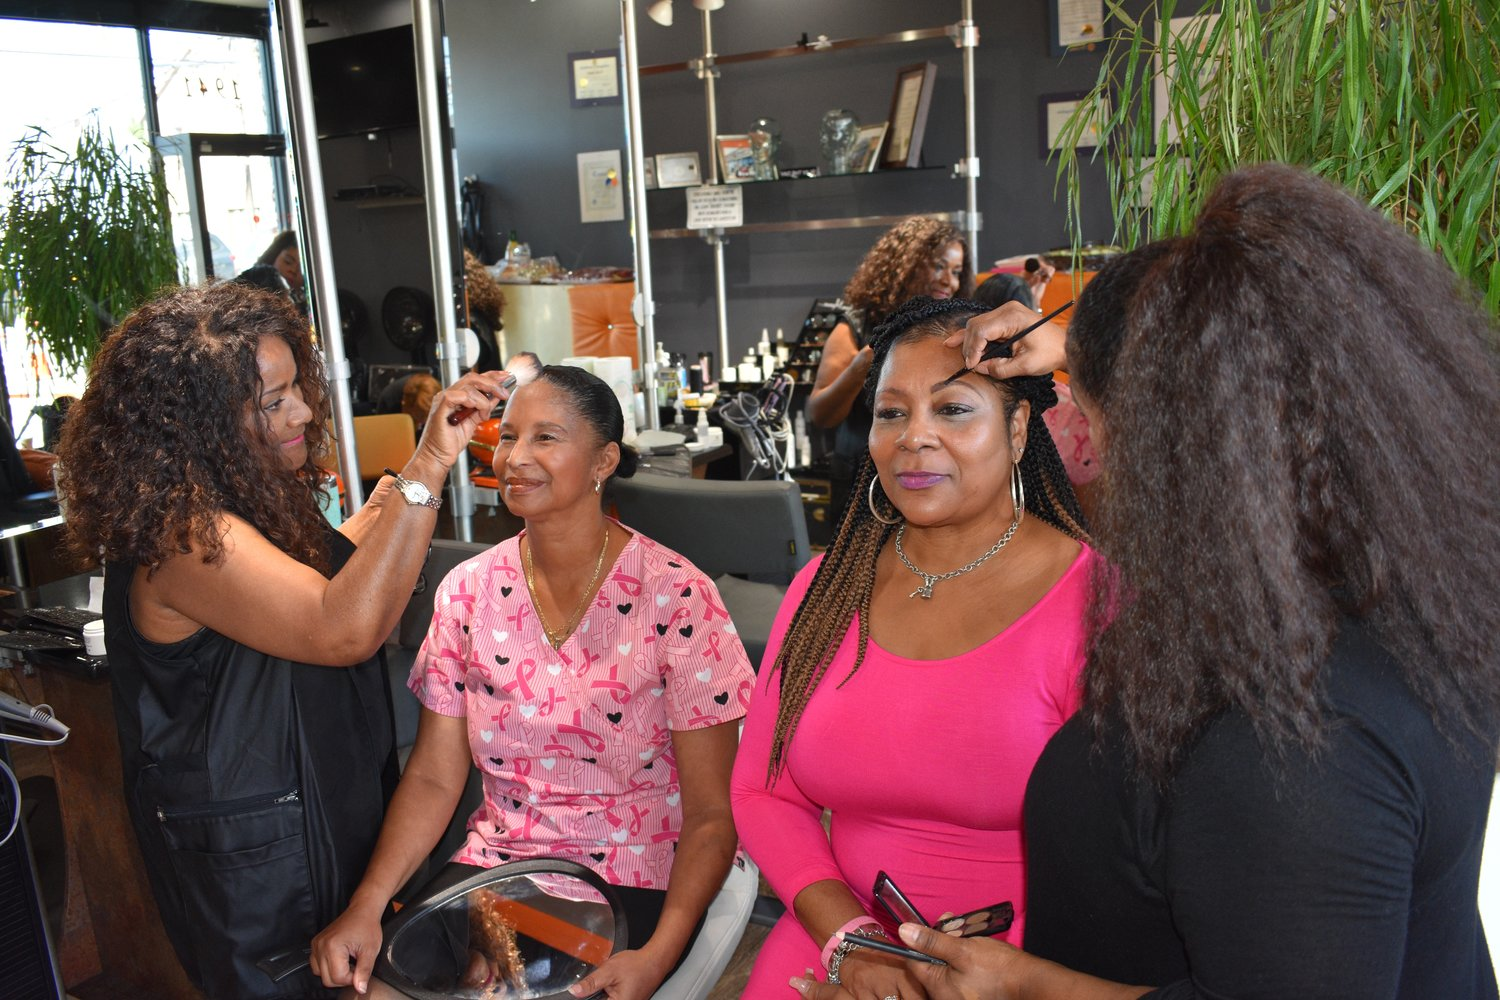 Makeup stylists Vera Moore, left, and Jeune helped beautify Bernice Smith and Walker.